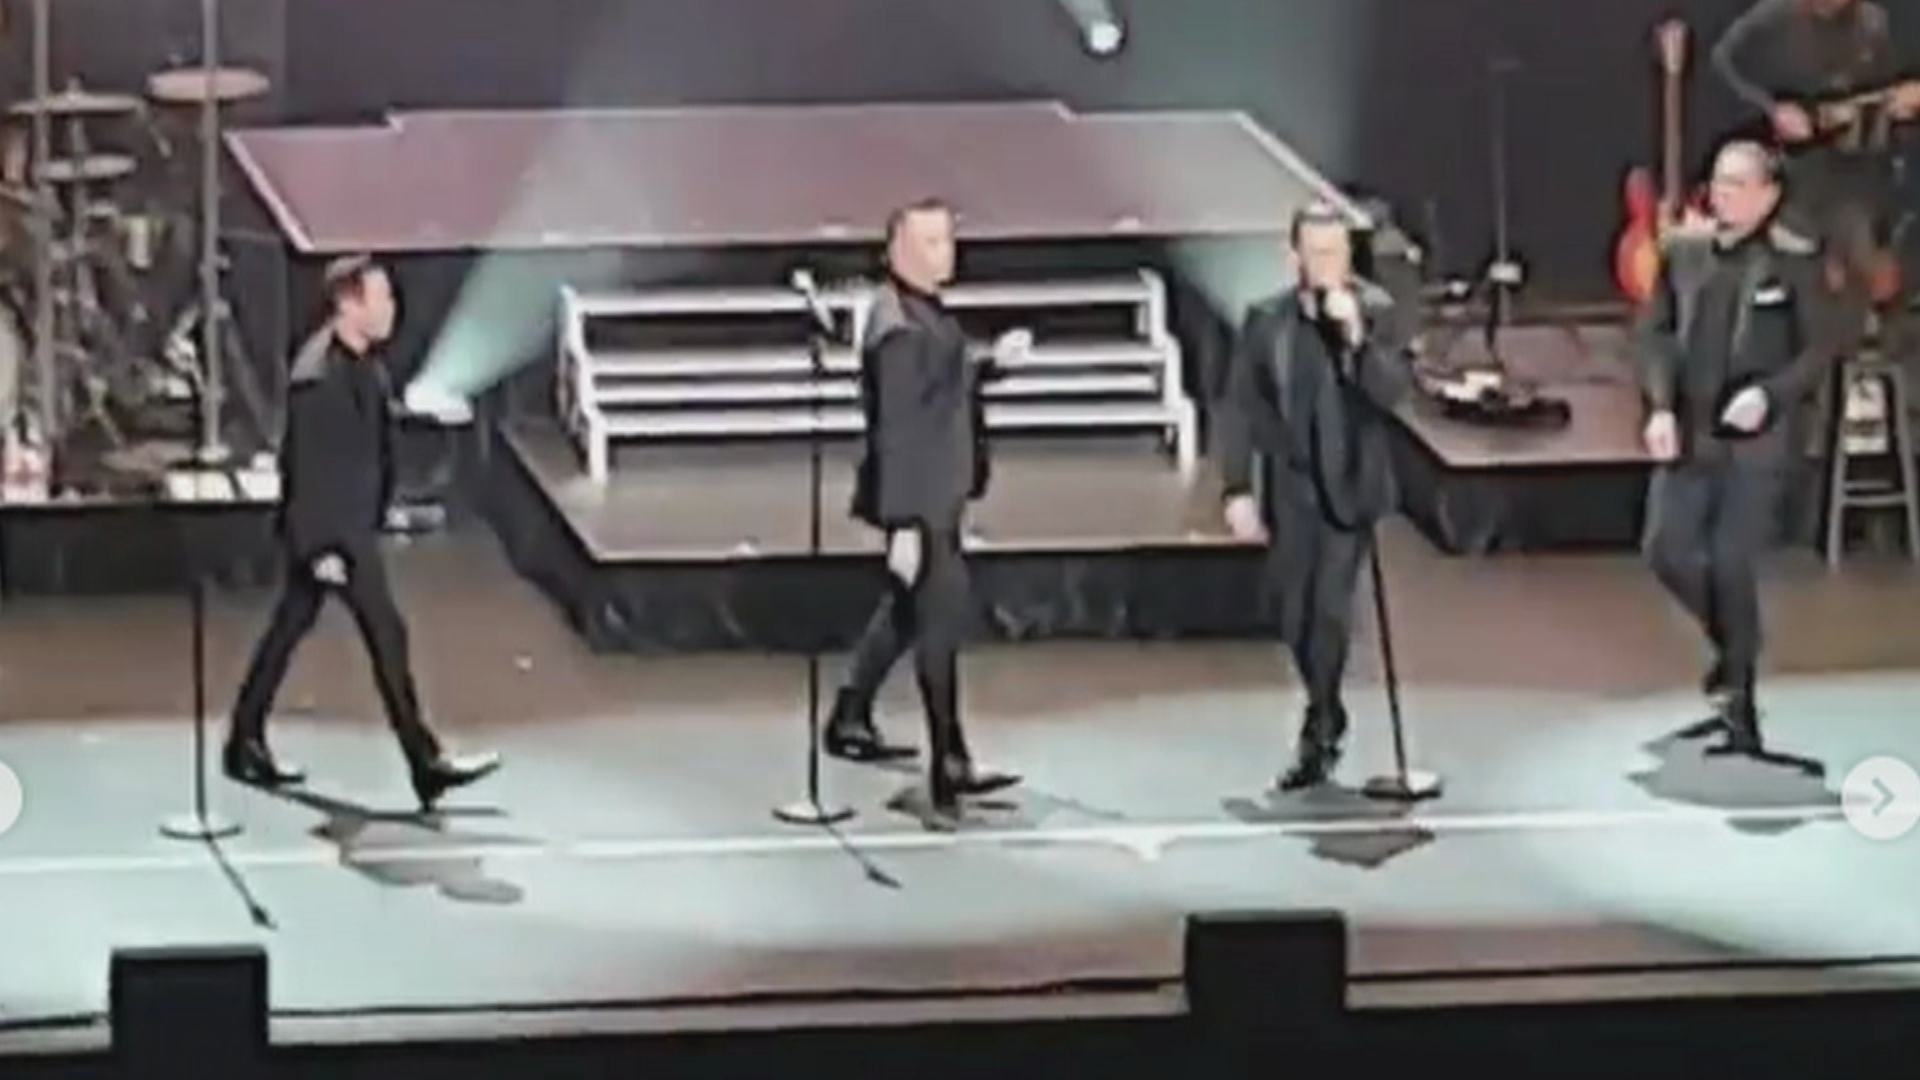 Human Nature performing at the Sydney Coliseum in West HQ at the Rooty Hill RSL.